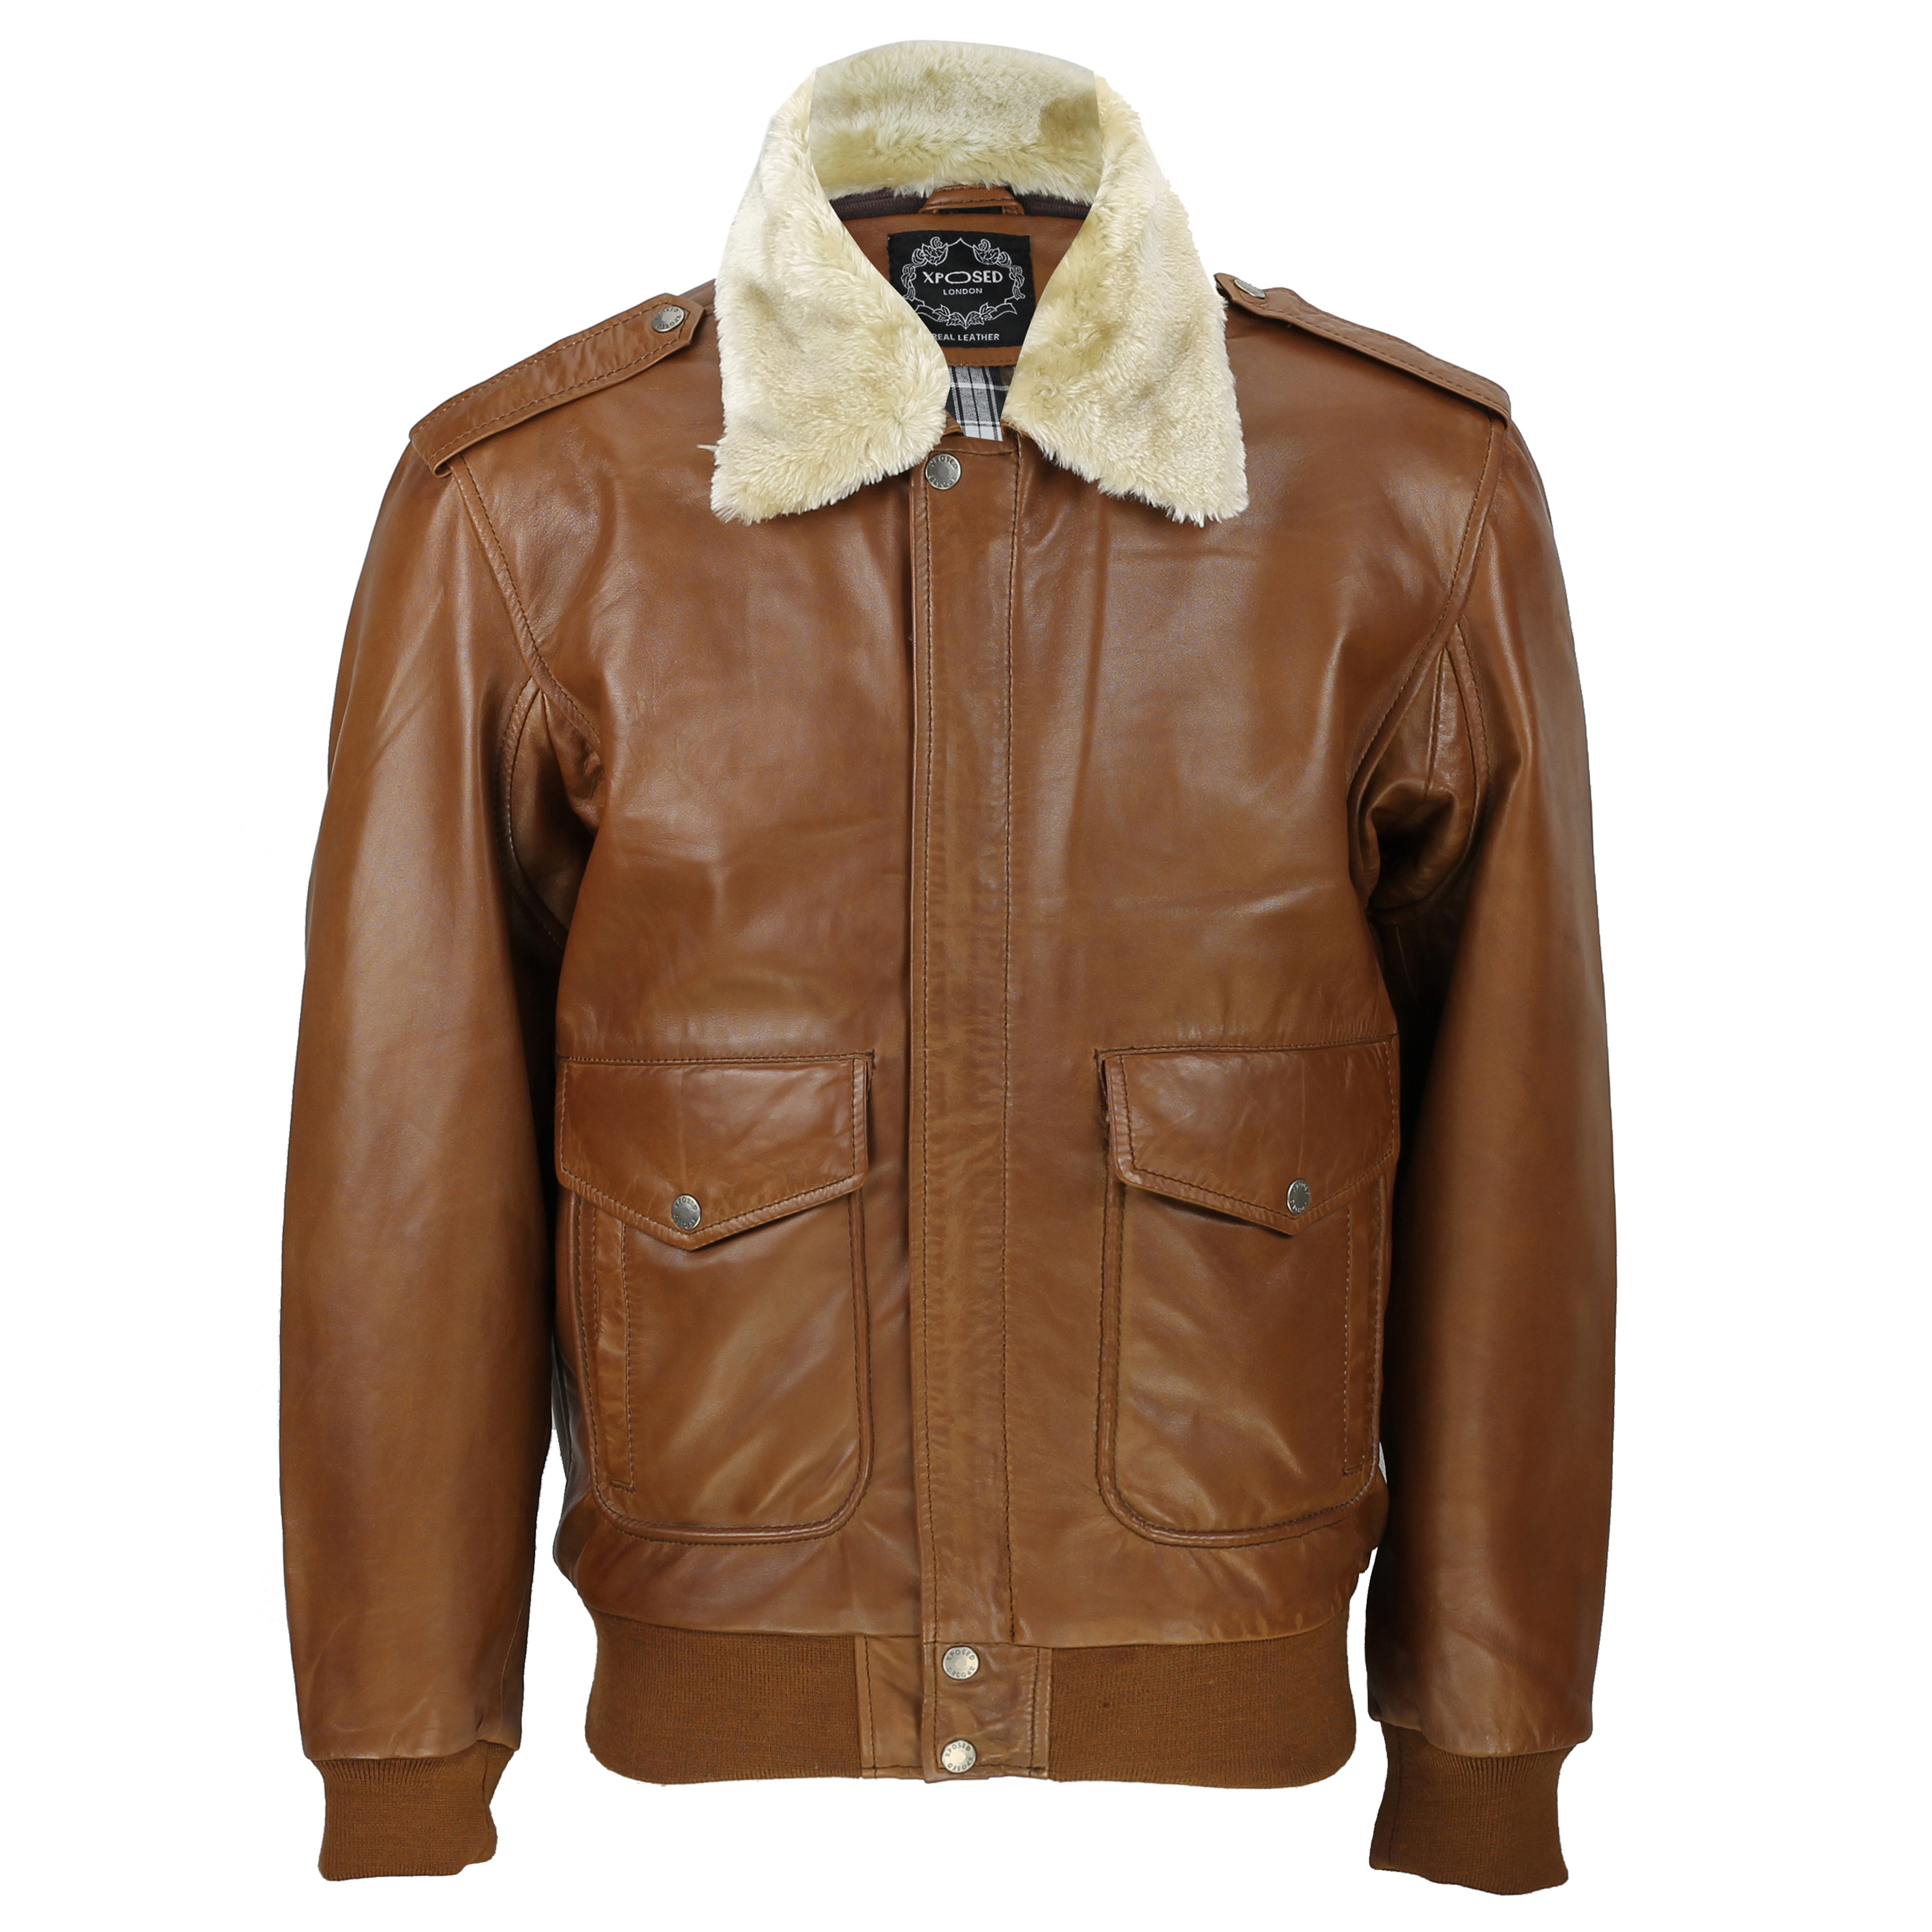 7a23082e0 Details about Mens Real Leather Tan Brown Vintage Pilot Removable Fur  Collar Bomber Jacket